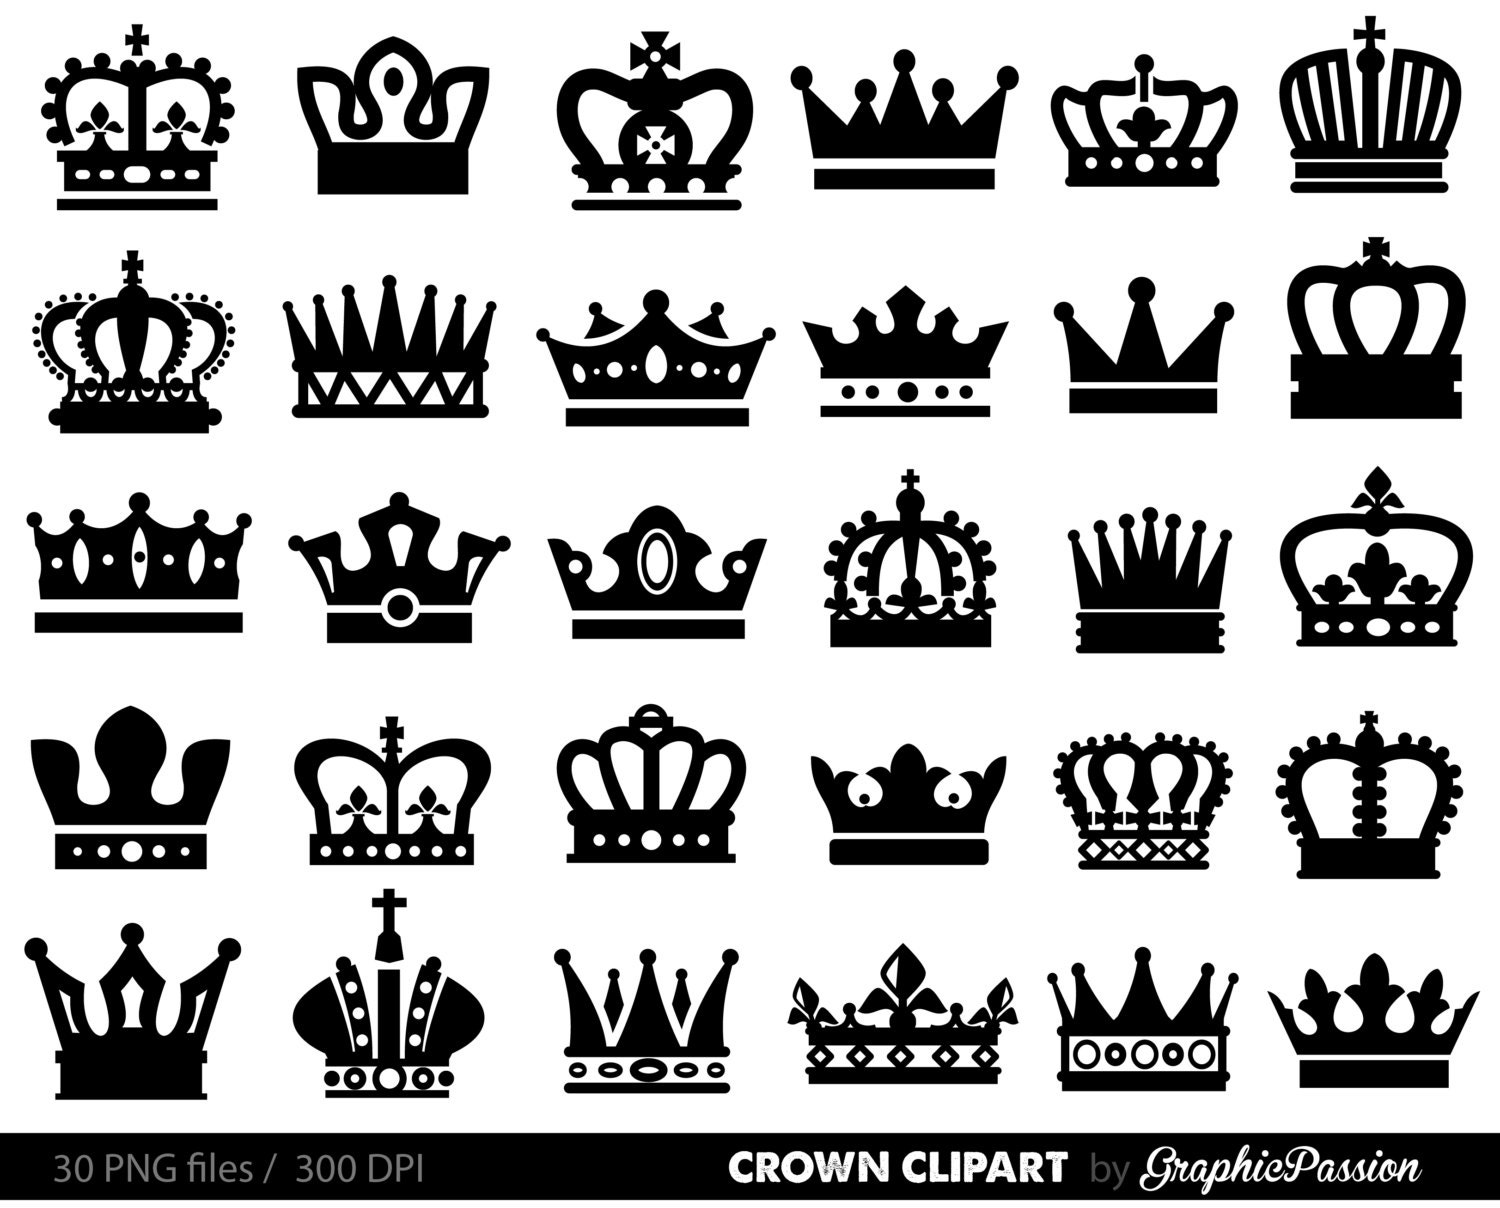 crown clipart  king queen crown clip art  royal crown baby zebra clipart png baby zebra clipart black and white